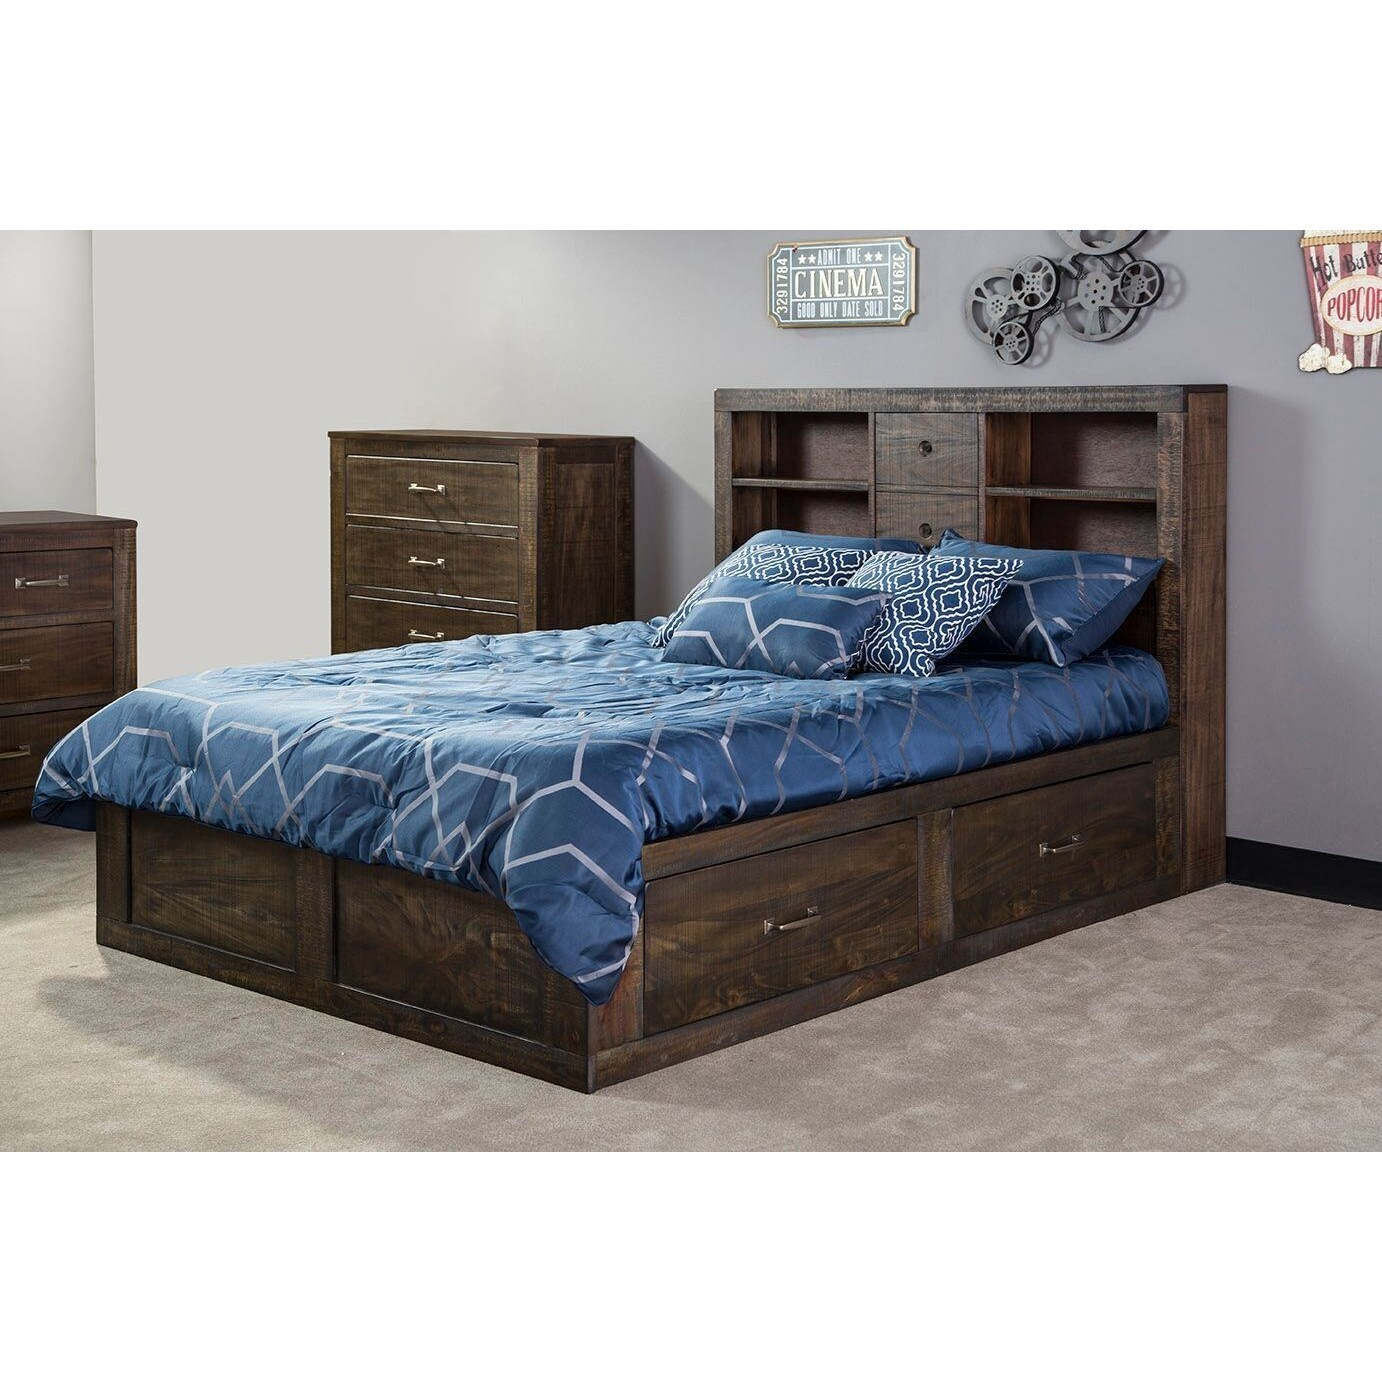 Rustic Queen Captain's Bookcase Storage Bed with Cord Management